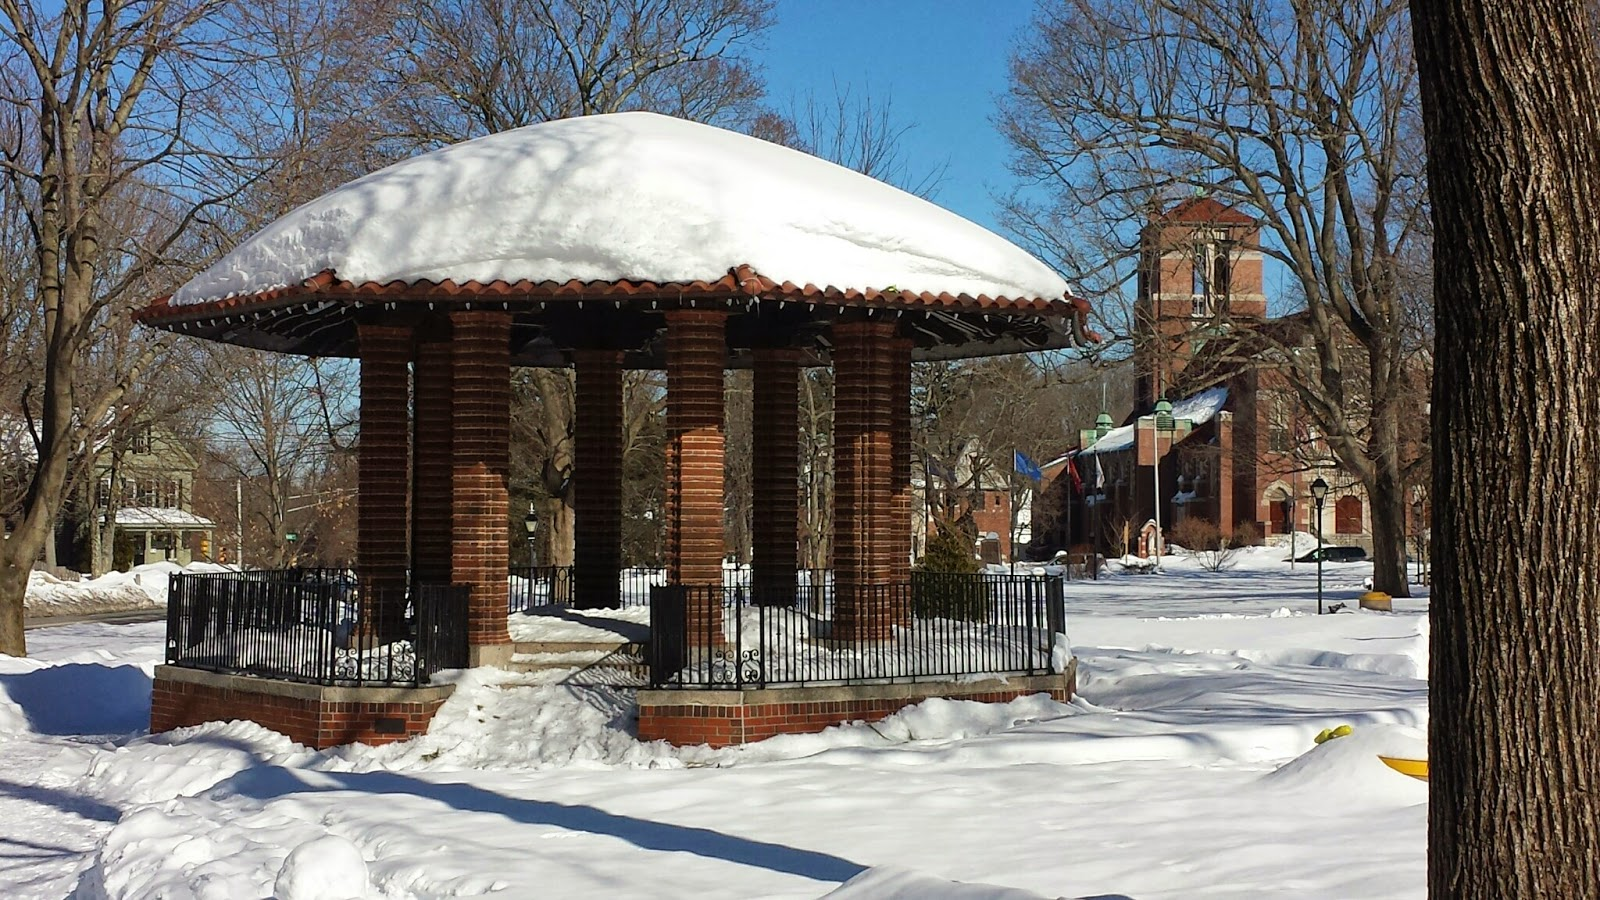 without the snow, the Town Common is likely one of the locations for events scheduled  for the Cultural Festival during the last week of July